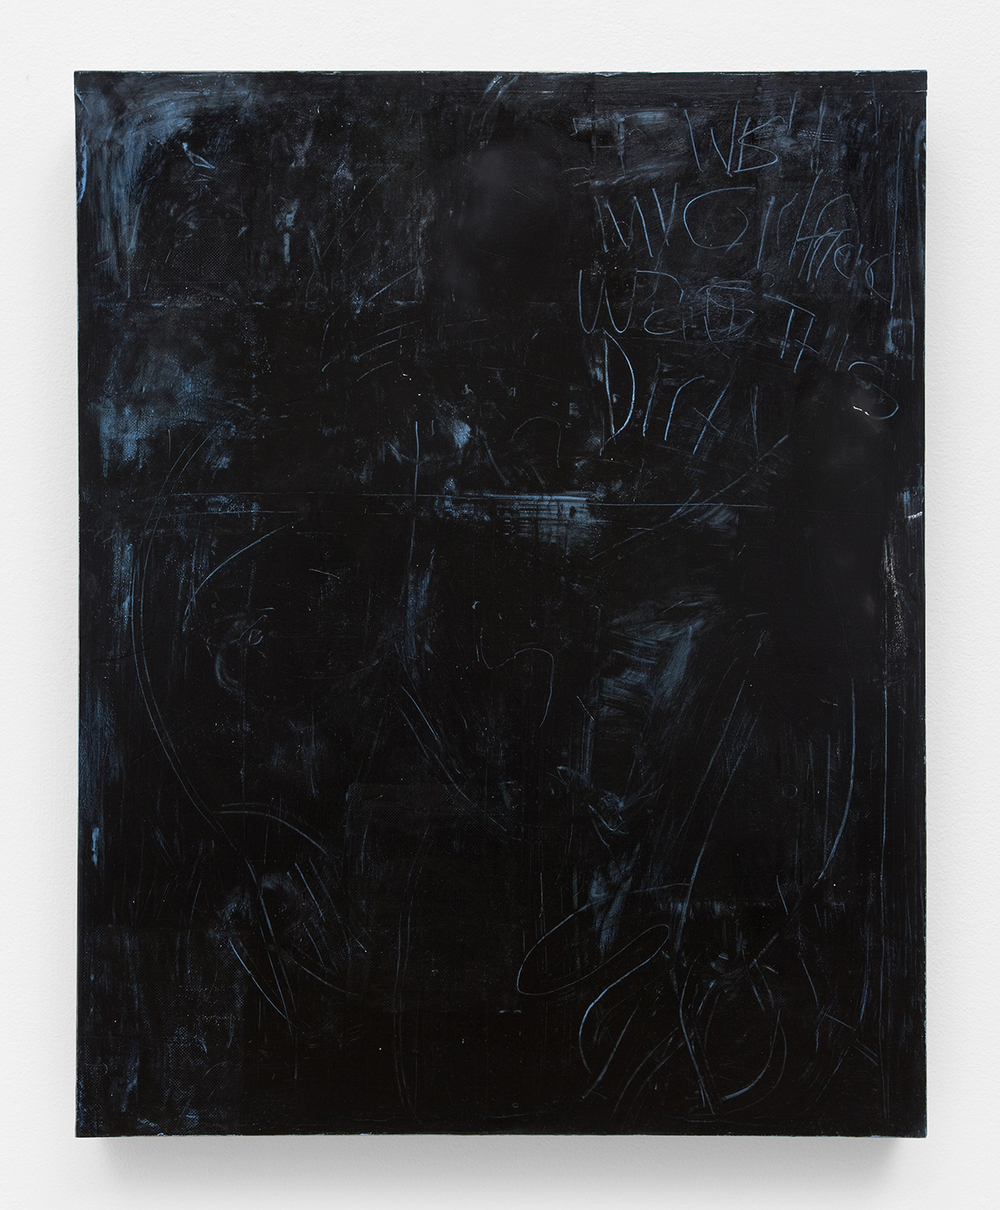 Black Girlfriend, 2012 Oil, sheetrock, joint compound, metal, wood 60 x 48 inches